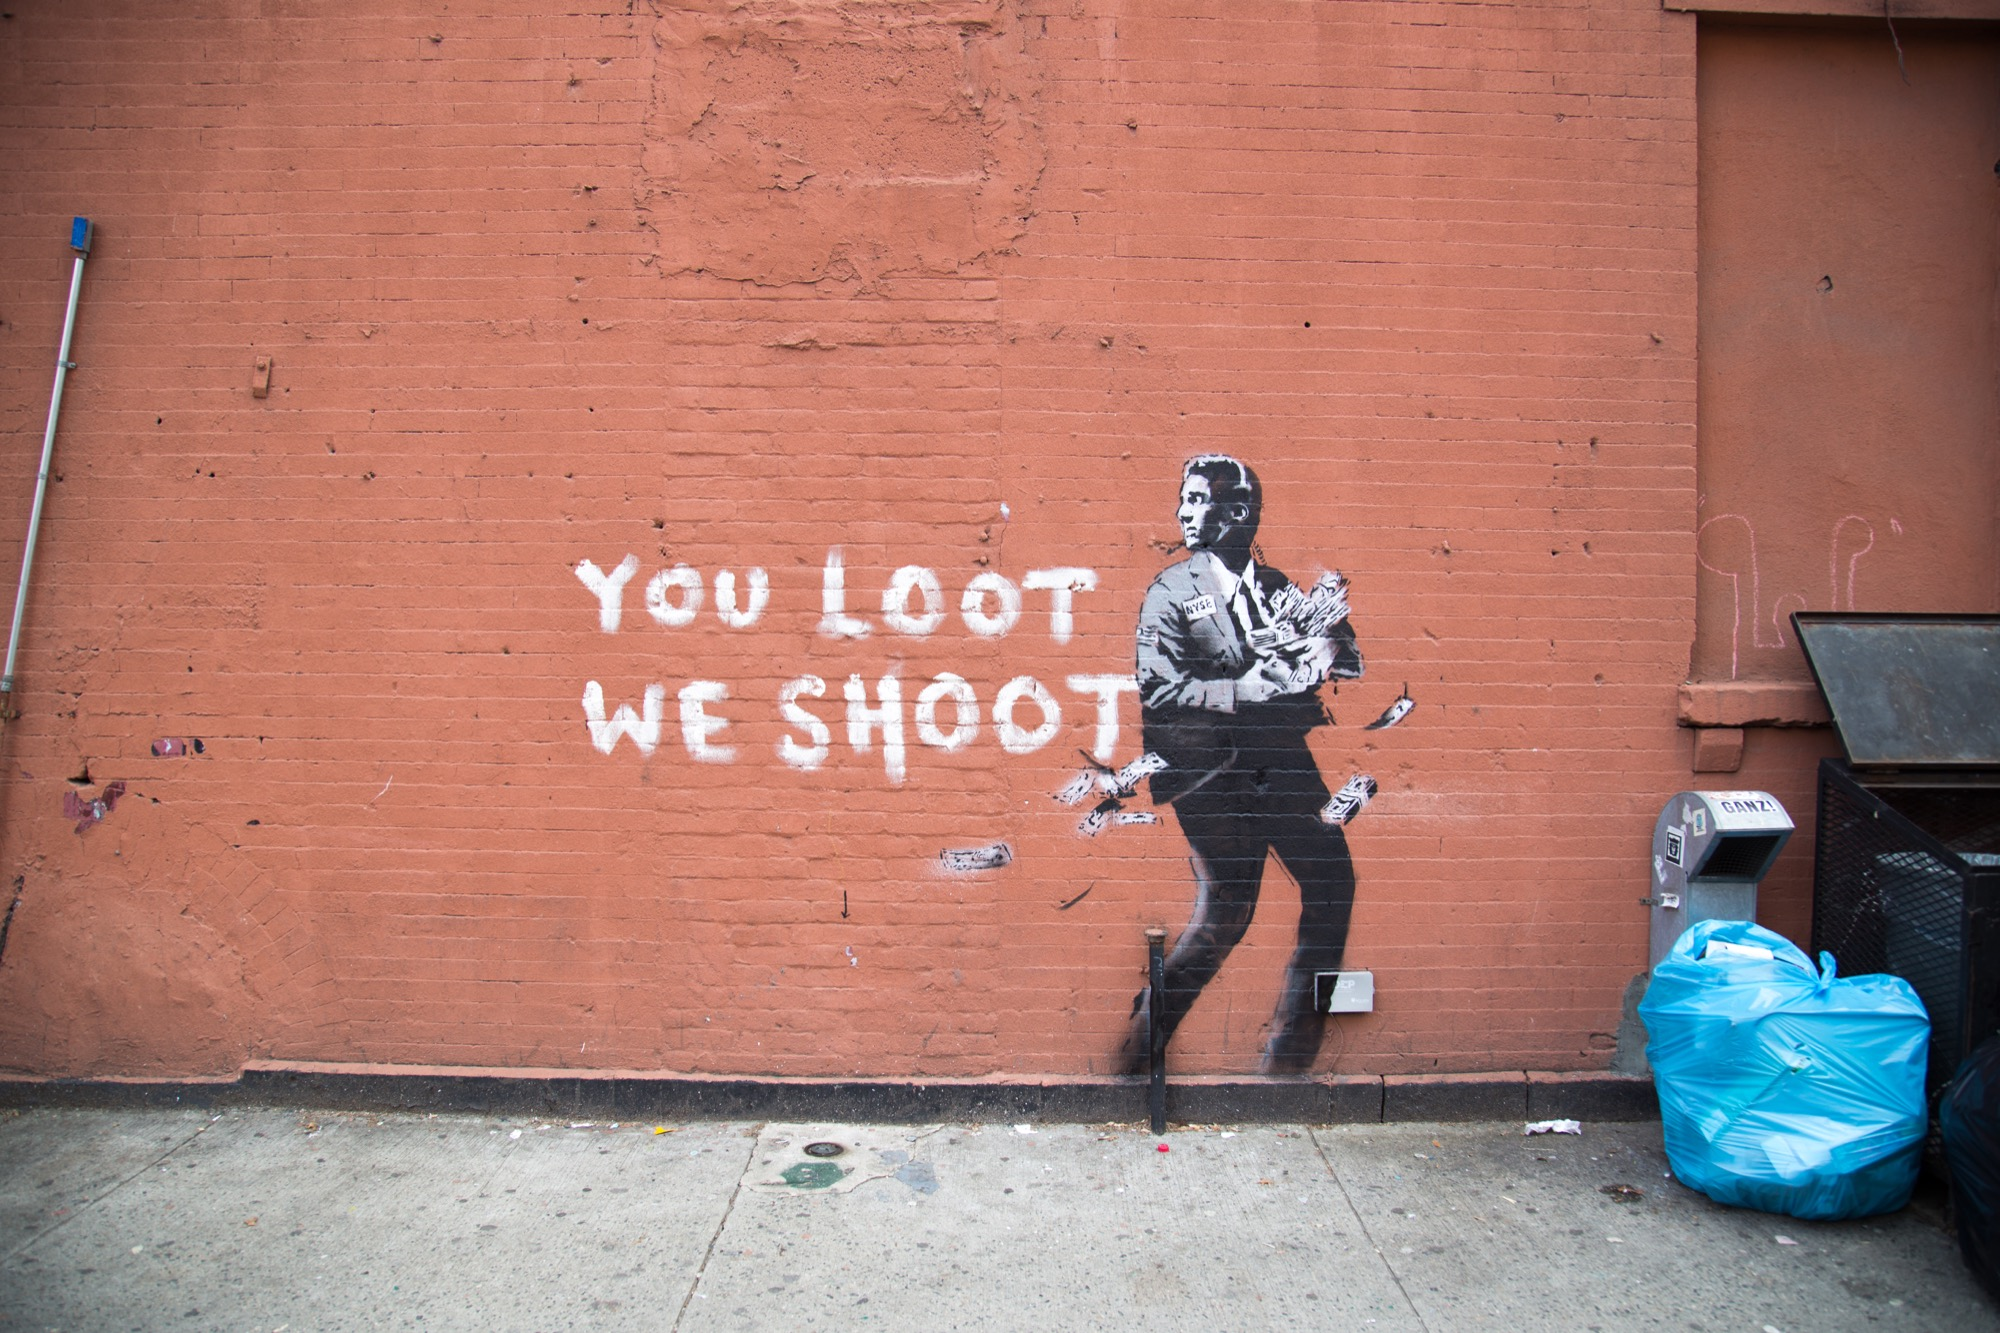 New York City Wall Mural Quot You Loot We Shoot Quot By Banksy In New York City